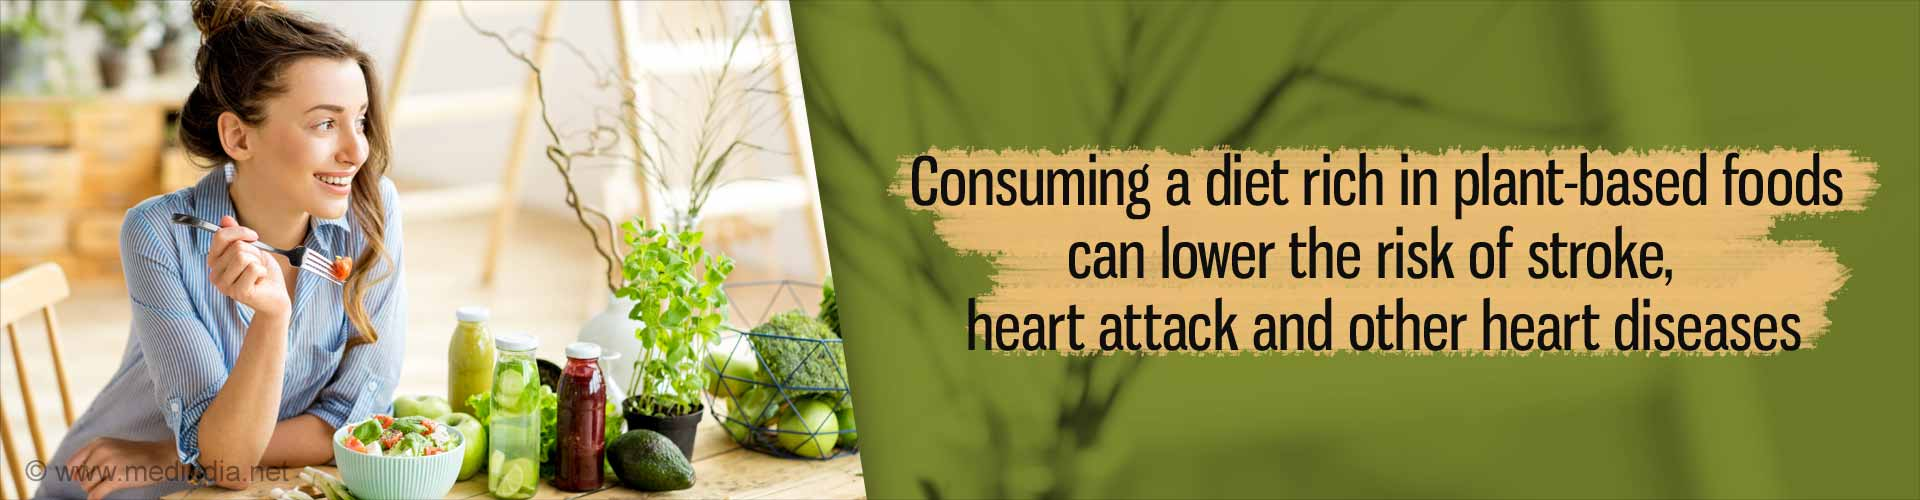 Eating More Plant-based Foods can Keep Heart Disease at Bay